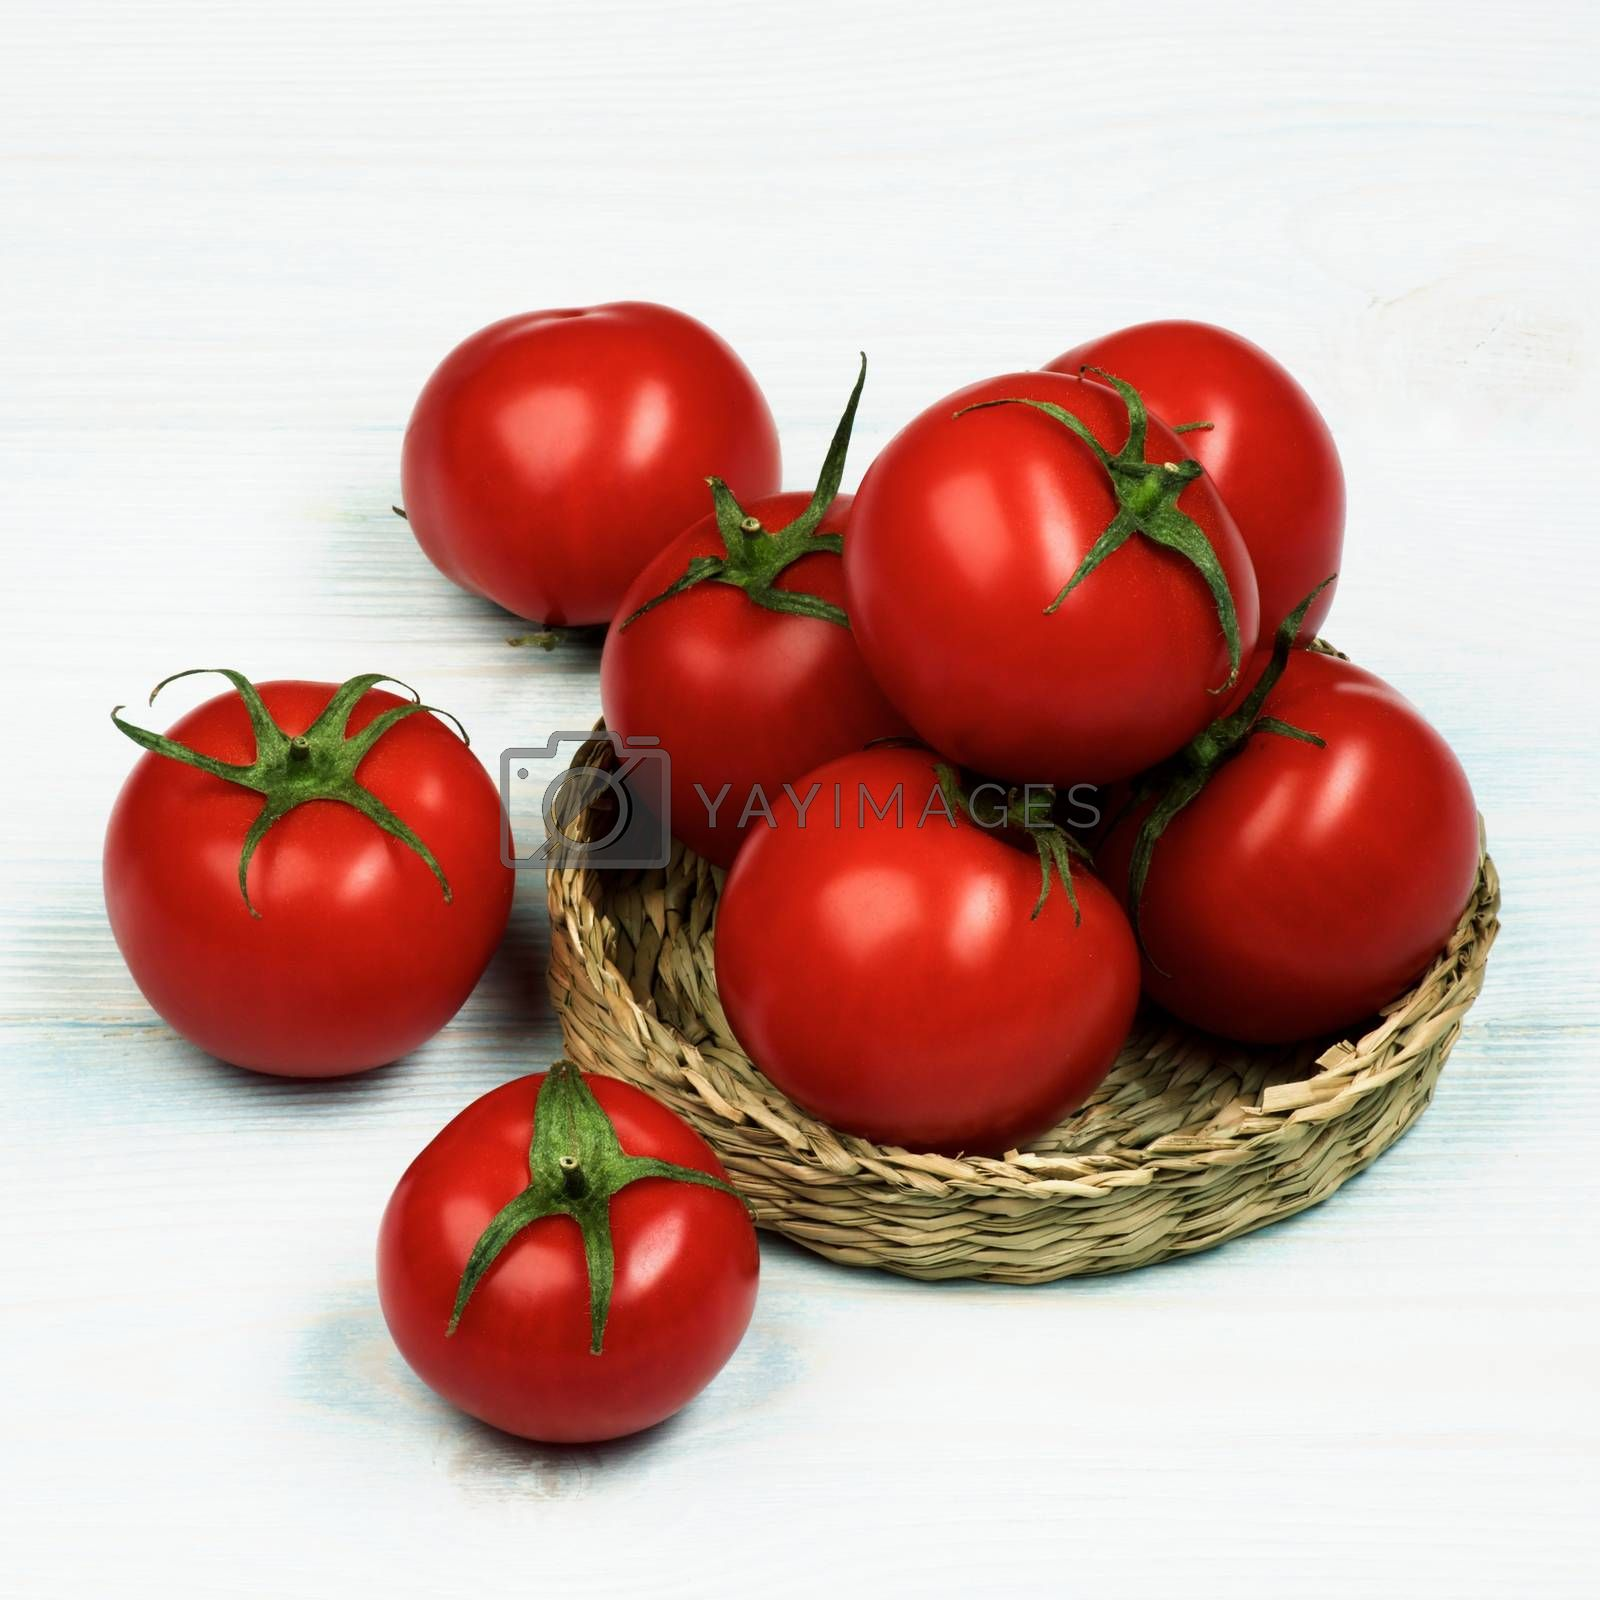 Arrangement of Ripe Raw Red Tomatoes with Stems in Wicker Plate closeup on Light Wooden background